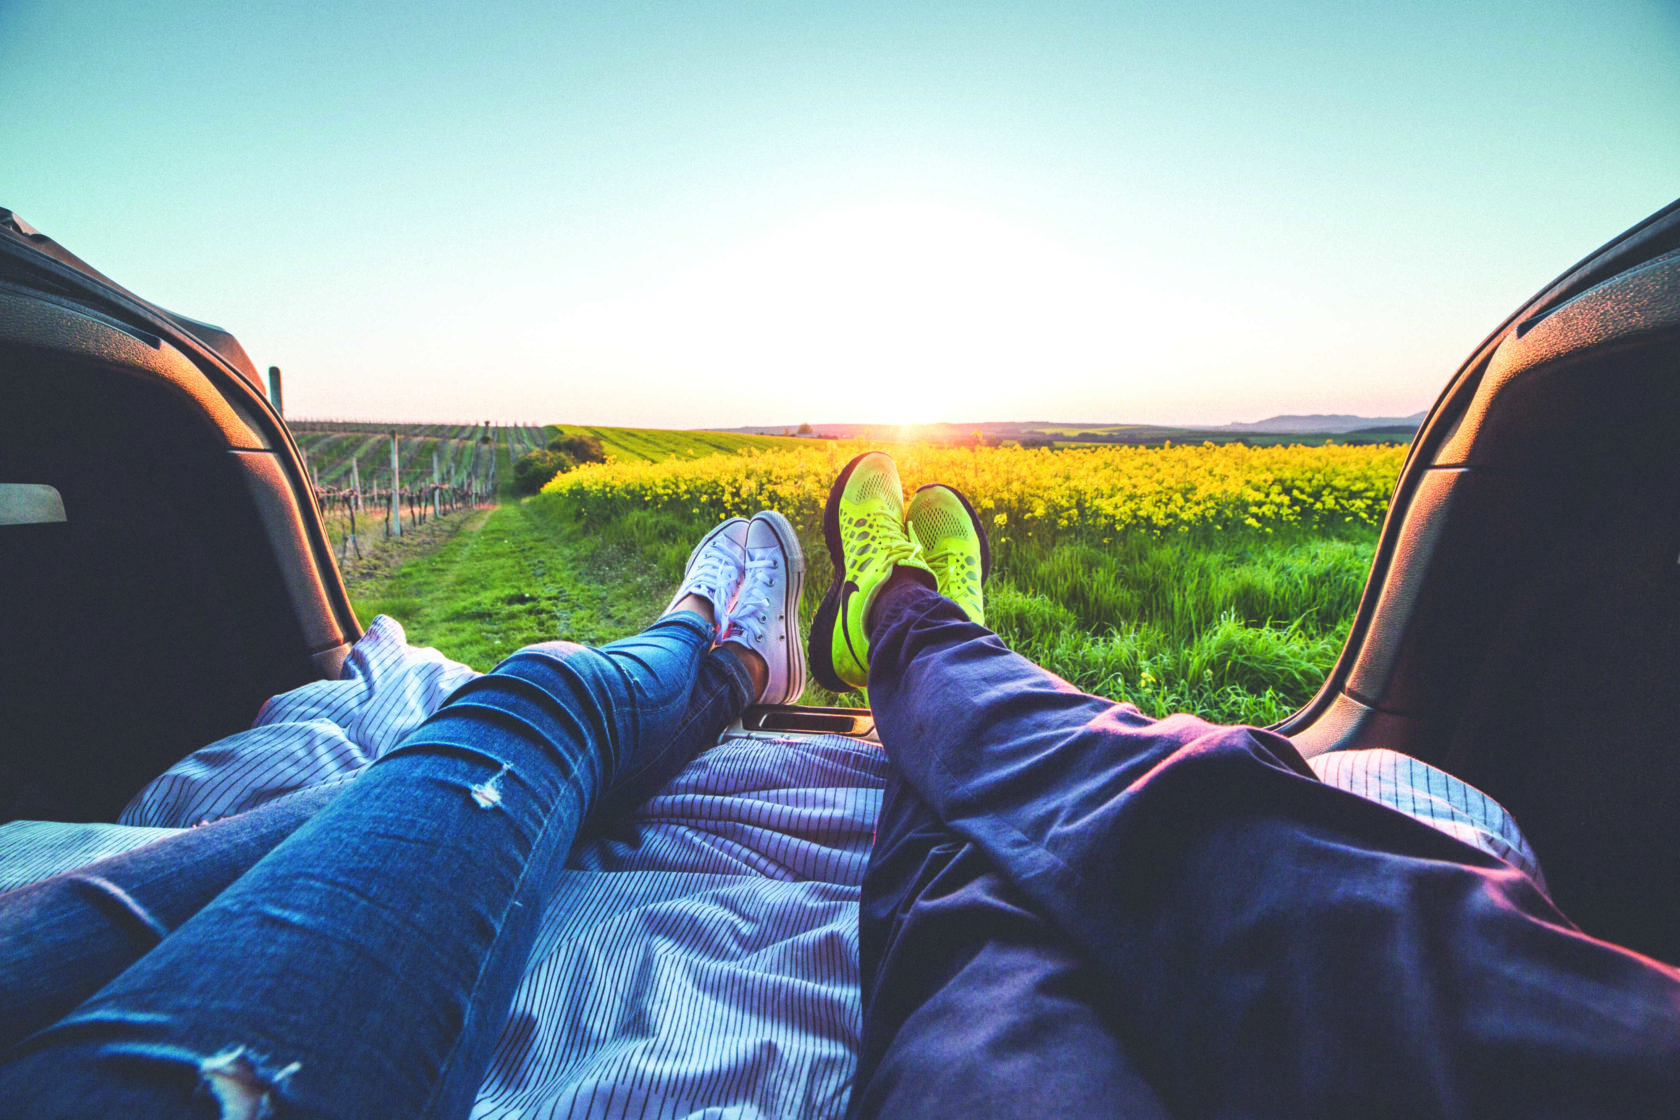 Two people laying down in the trunk of a car looking out at a field of flowers.